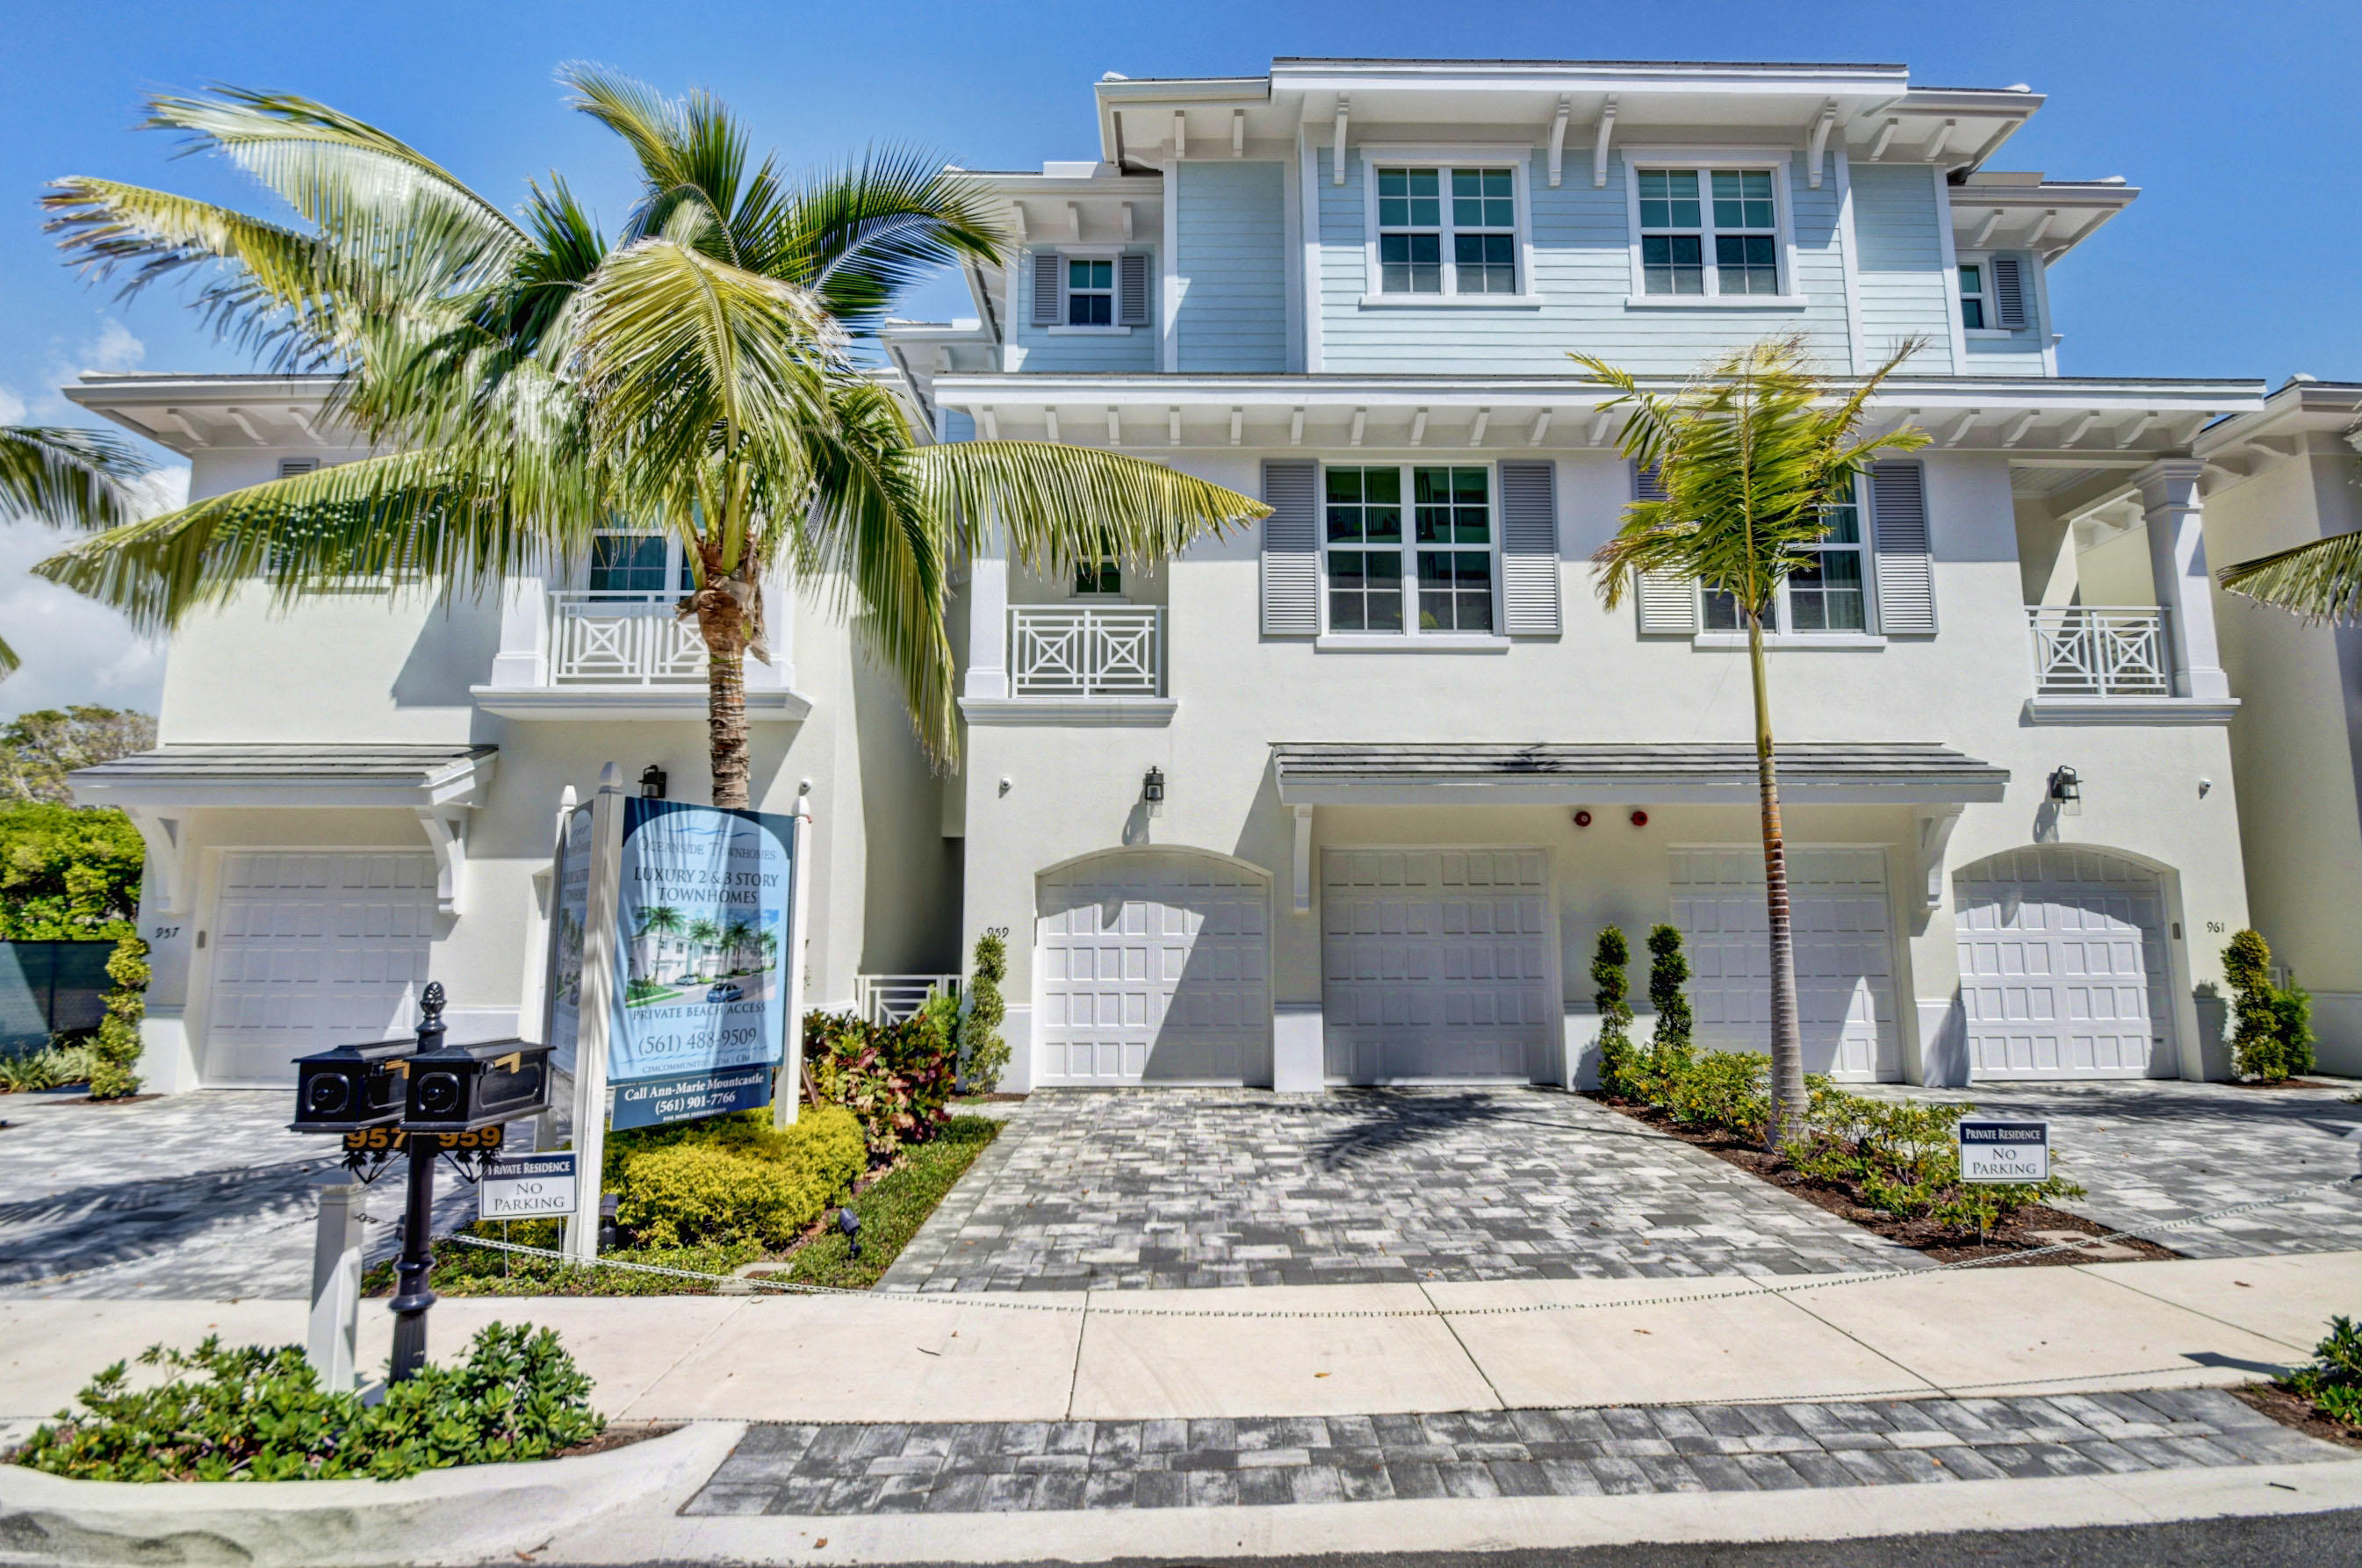 OCEANSIDE TOWNHOMES REAL ESTATE